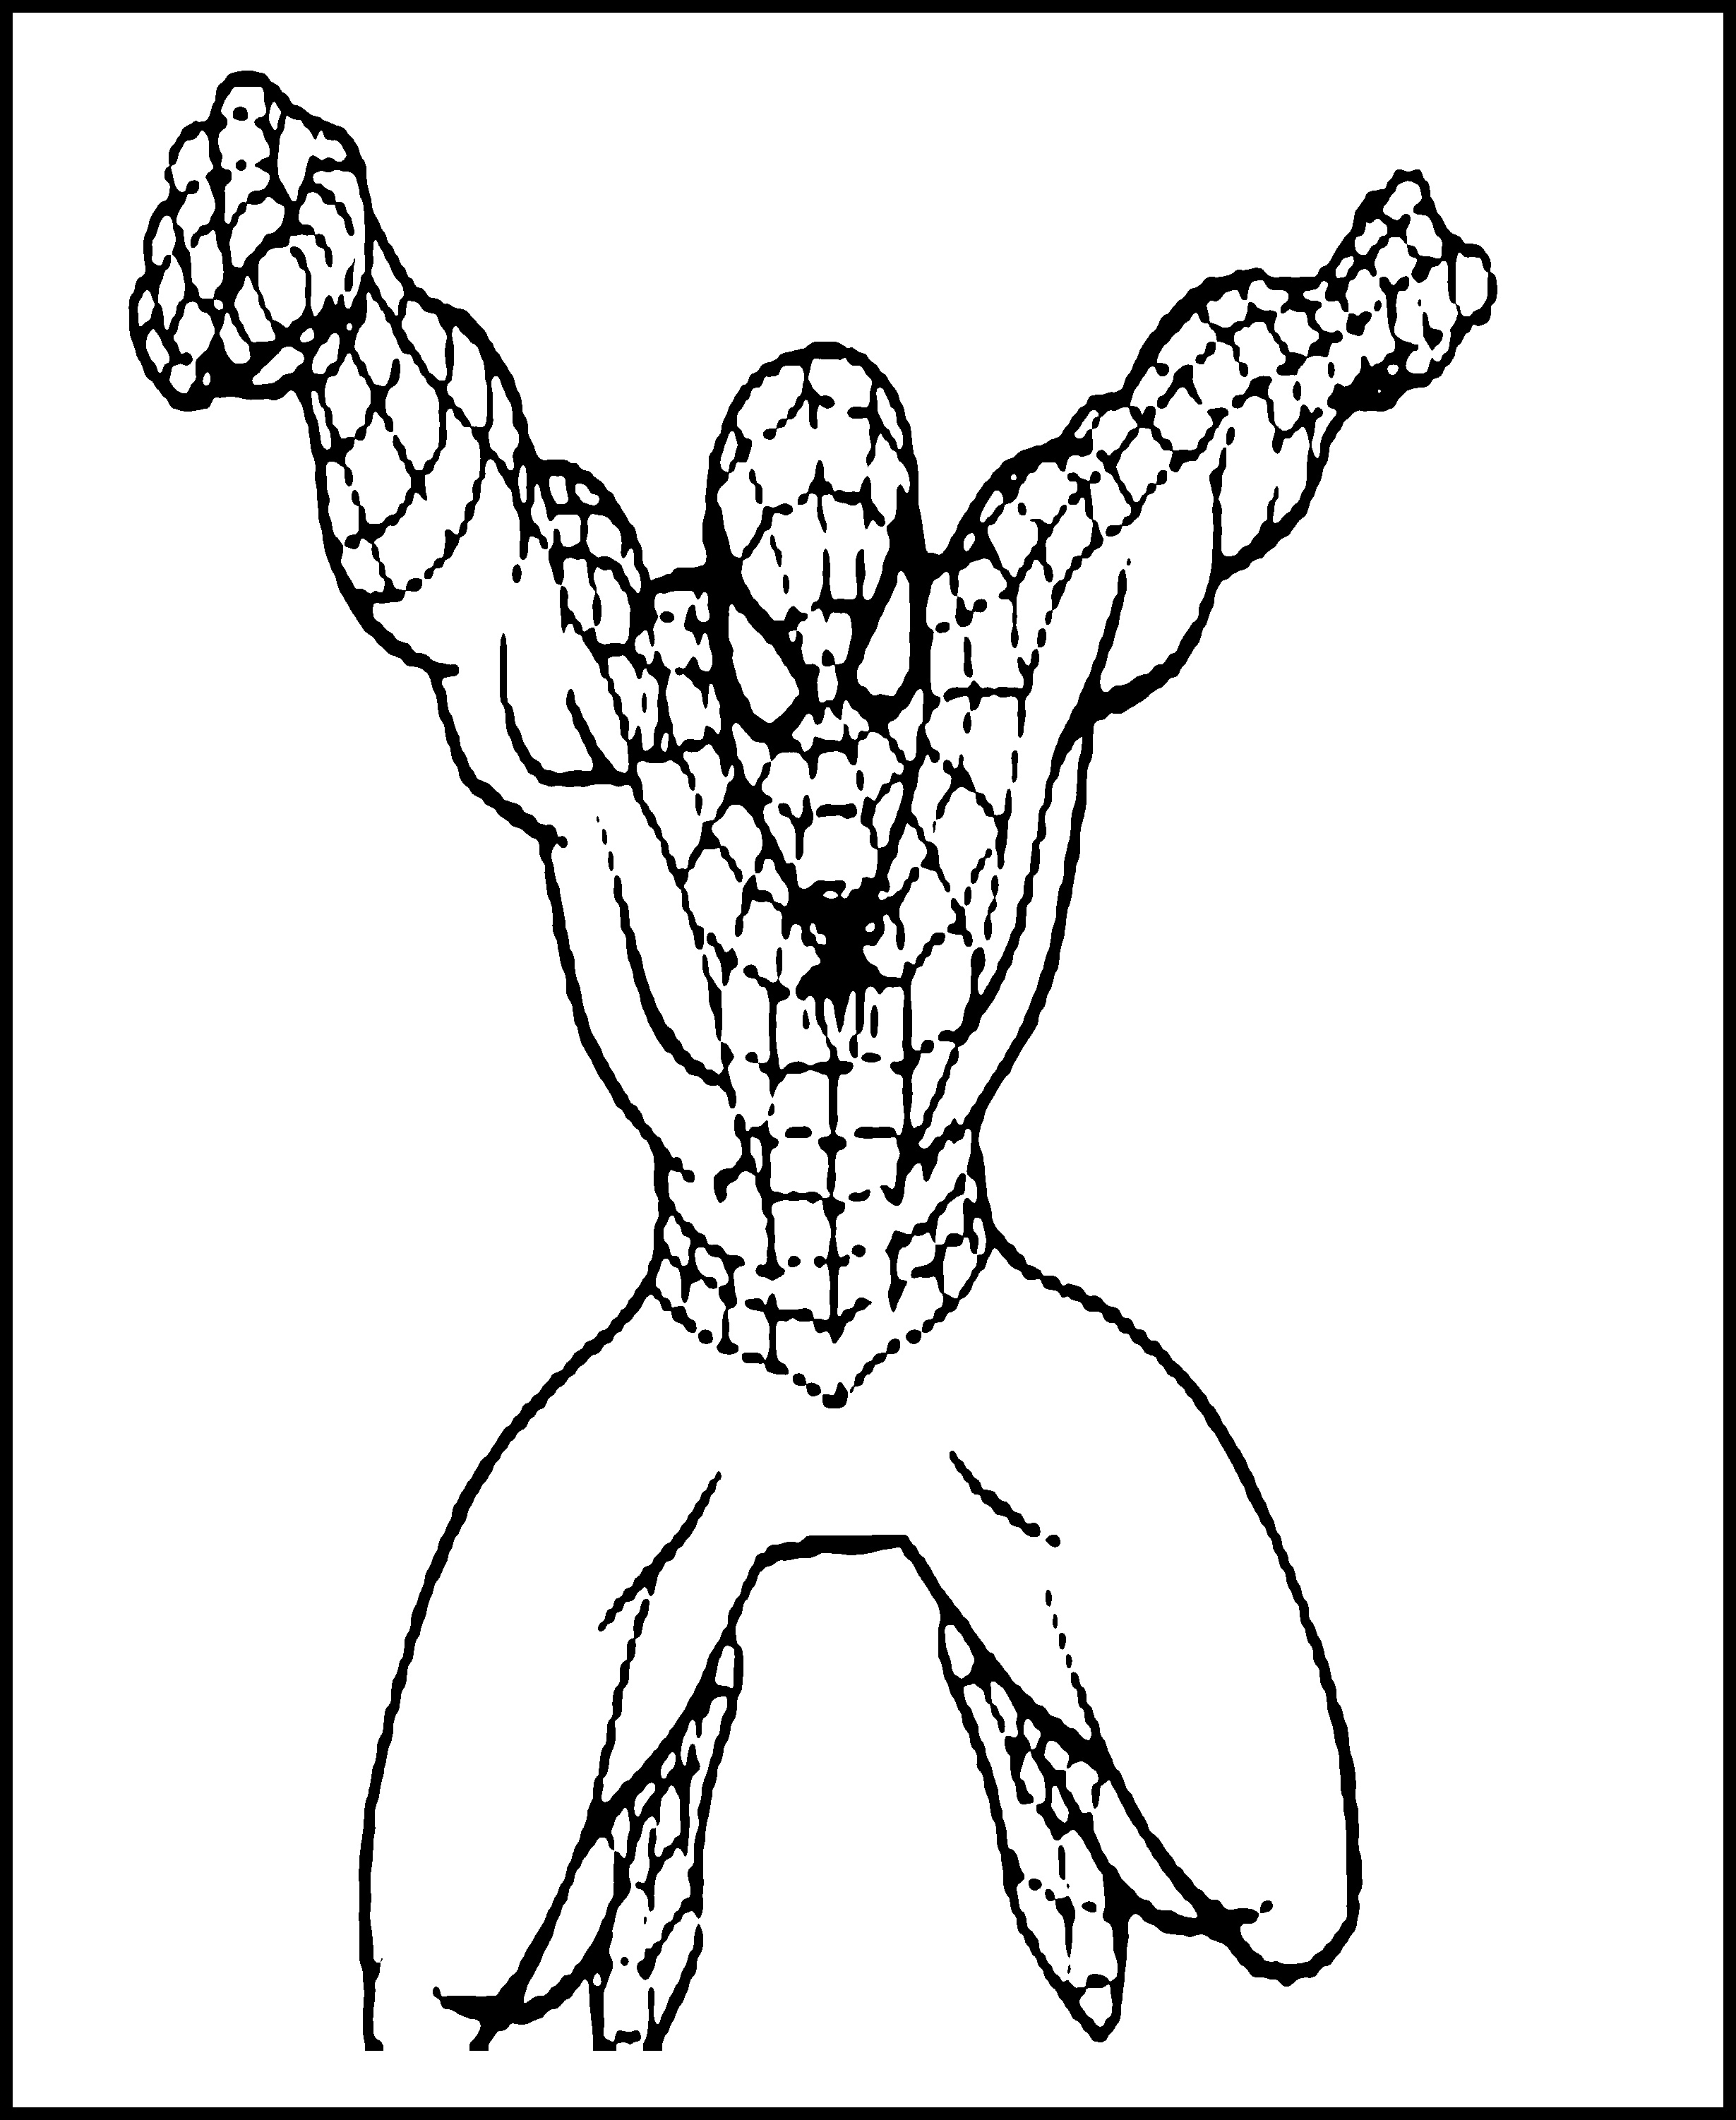 spiderman coloring pages to print out - Print Out Colouring Pages